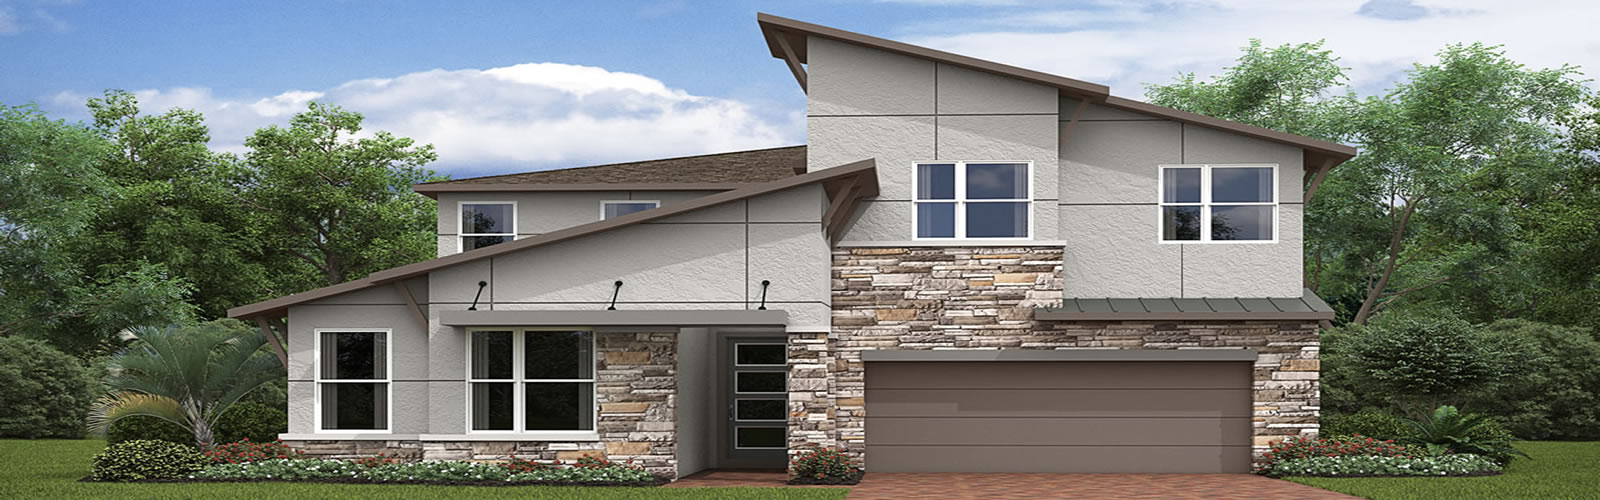 Florida new build homes inventory homes in florida for for Westside homes